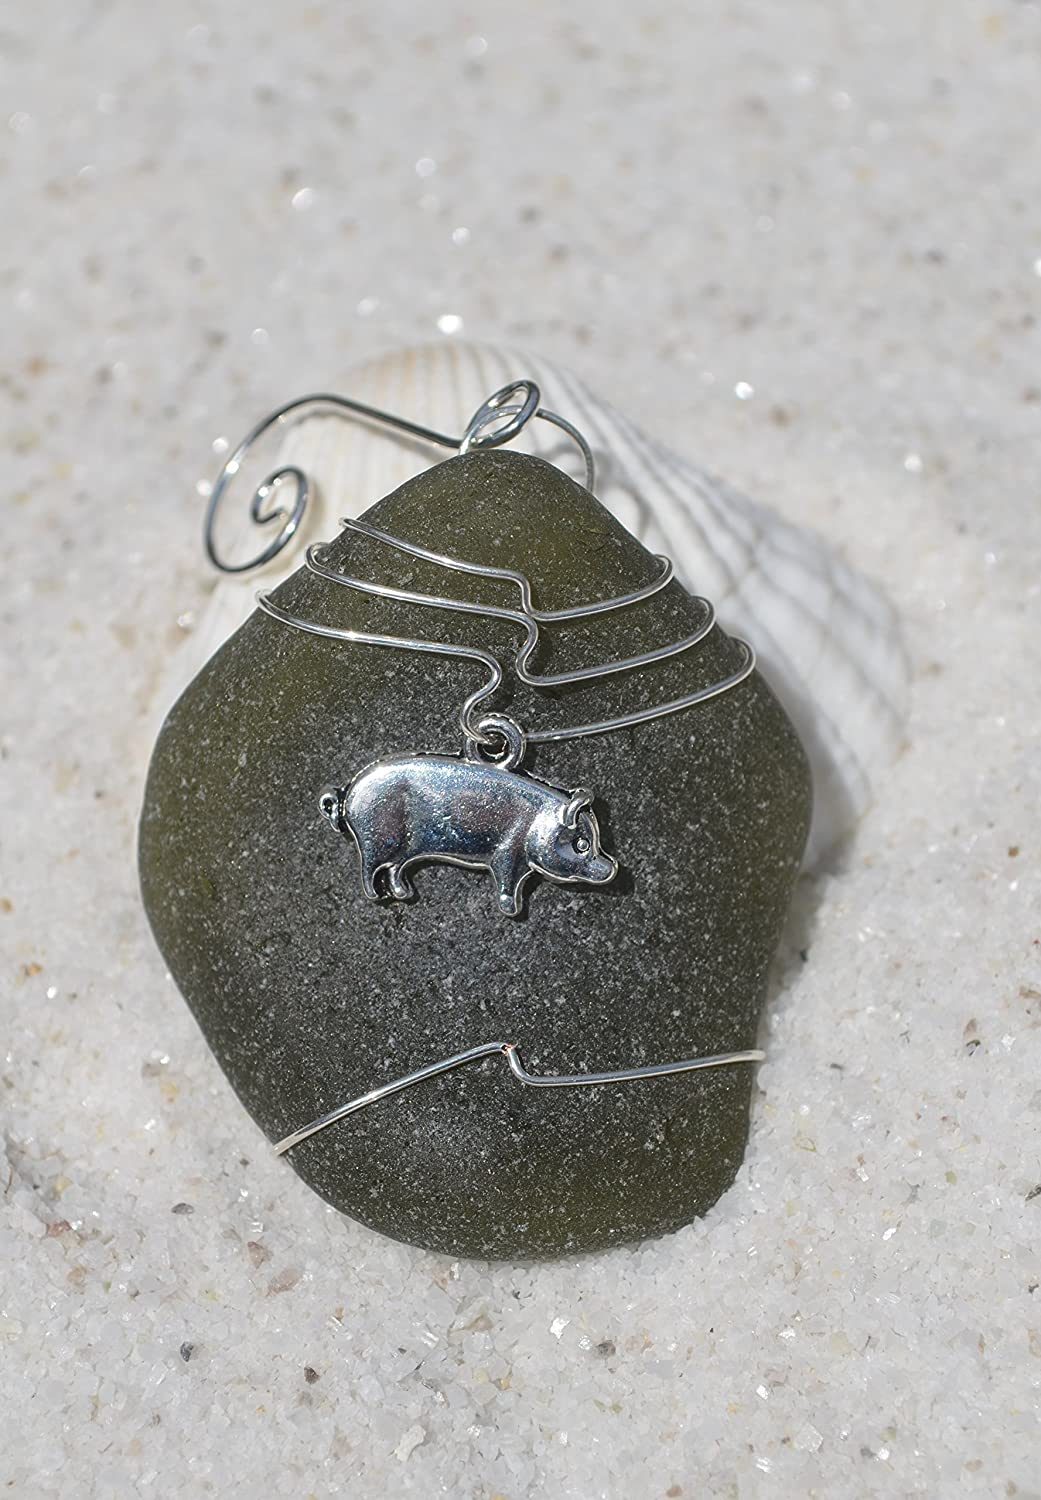 Amazon.com: Pig on a Genuine Dark Olive Green Sea Glass Ornament: Handmade